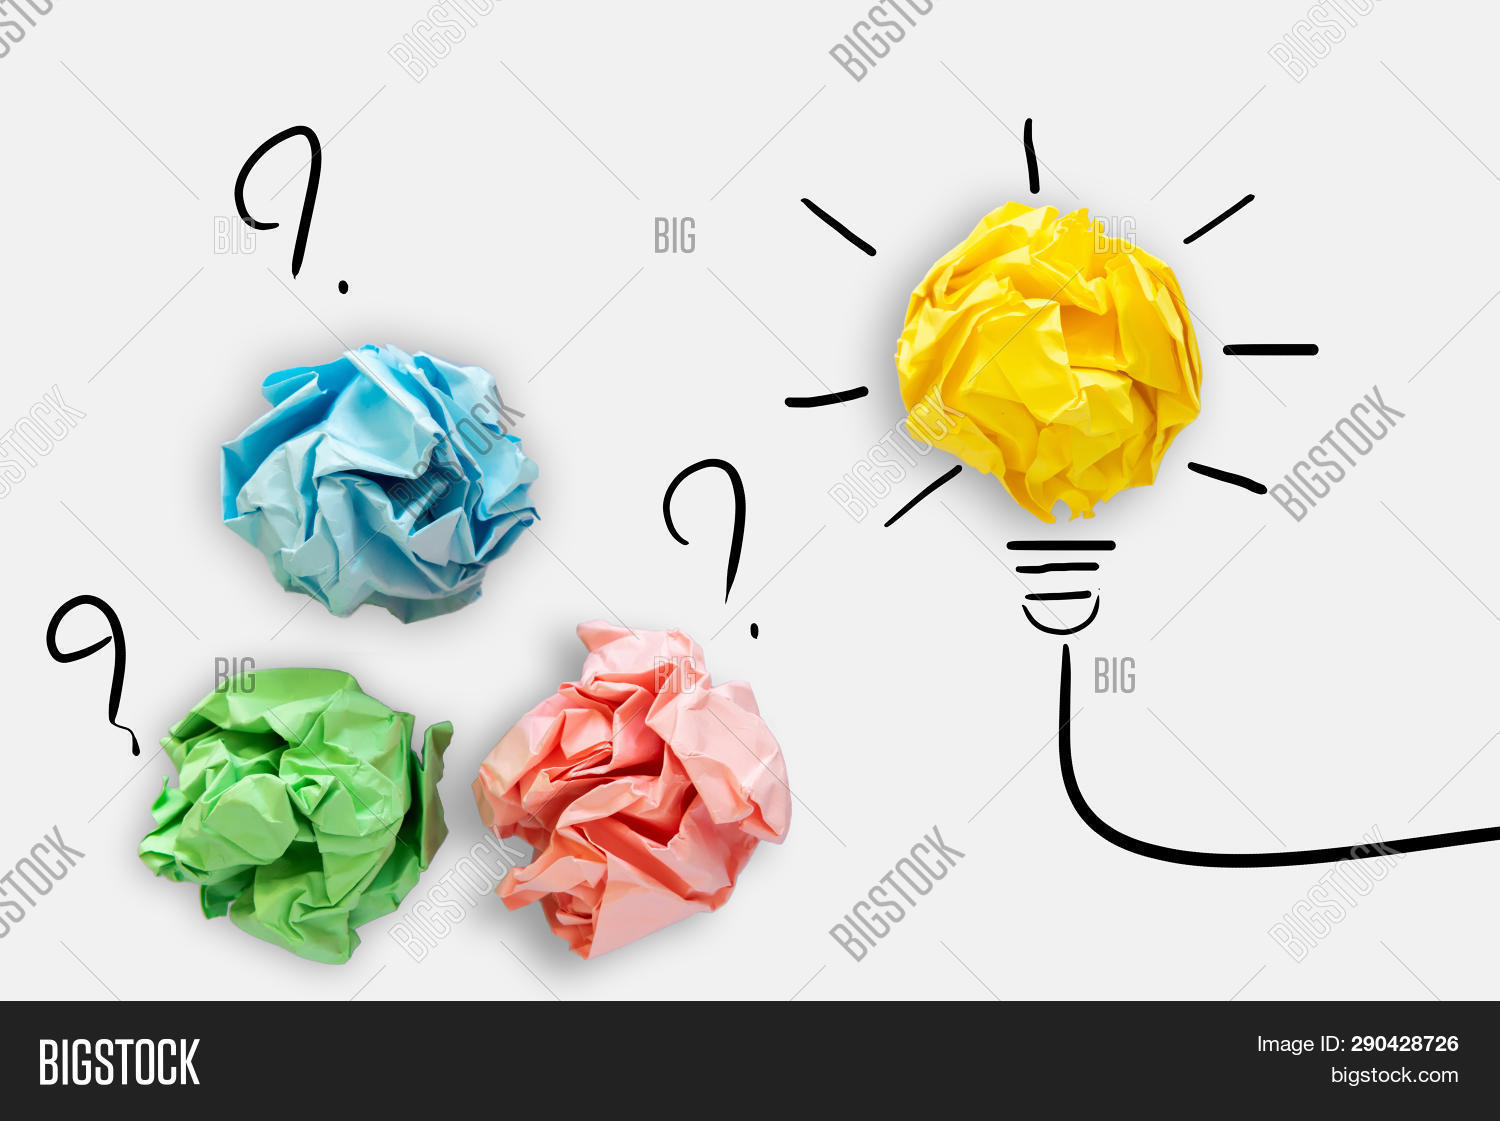 art,background,ball,brainstorm,brainstorming,bright,bulb,business,colors,competition,concept,confused,creative,creativity,crumpled,design,drawing,eco,electricity,energy,genius,good,graphic,idea,illustration,imagination,innovate,innovation,inspiration,invention,lamp,light,lightbulb,lines,motivation,new,paper,planning,power,save,sketch,solution,strategy,stroke,success,successful,symbol,technology,thinking,white